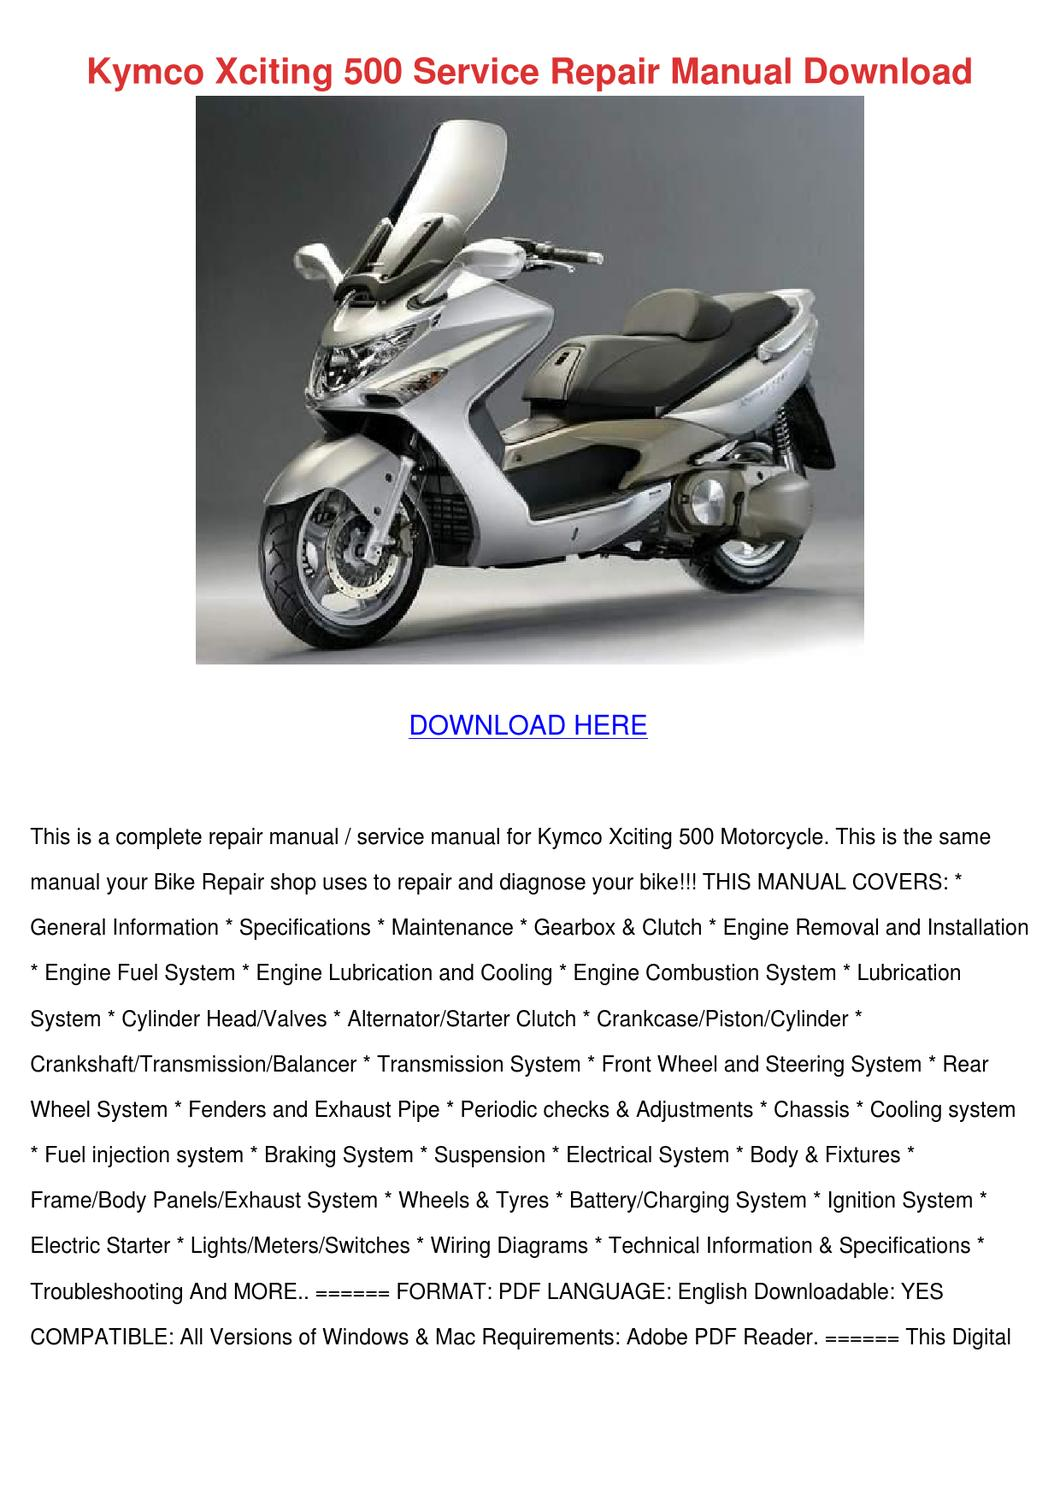 Kymco Xciting 500 Service Repair Manual Downl By Aliciawaggoner Issuu 2008 Wiring Diagram